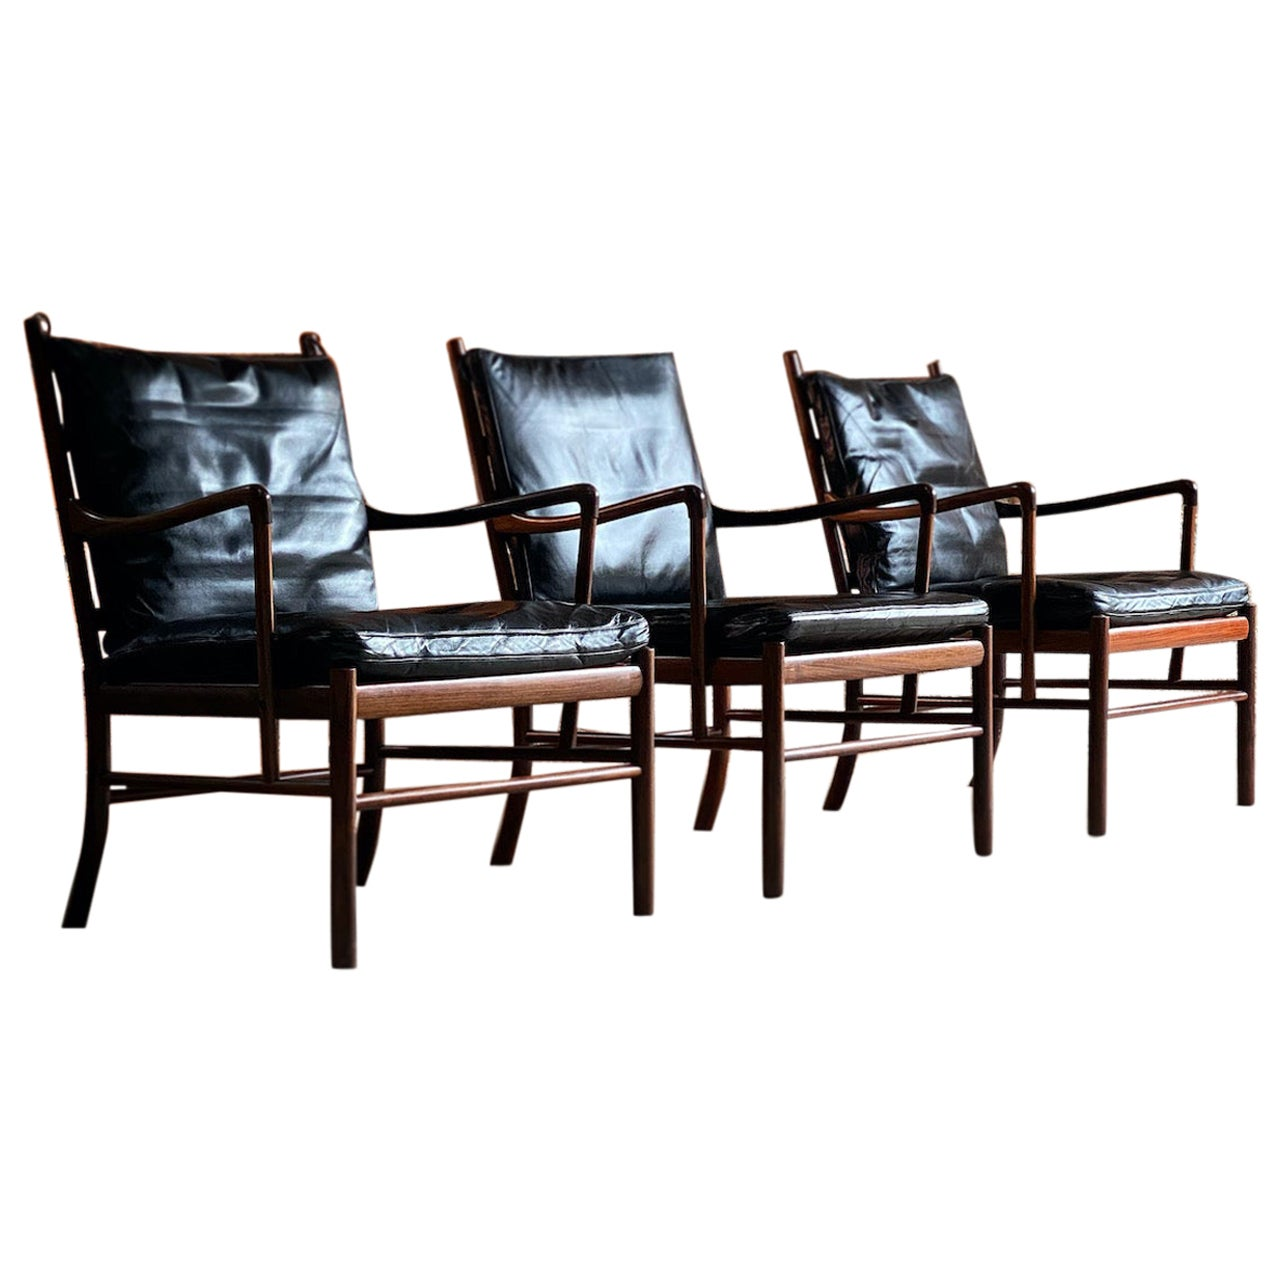 Ole Wanscher Model 149 Rosewood Colonial Chairs by Poul Jeppesens, circa 1950